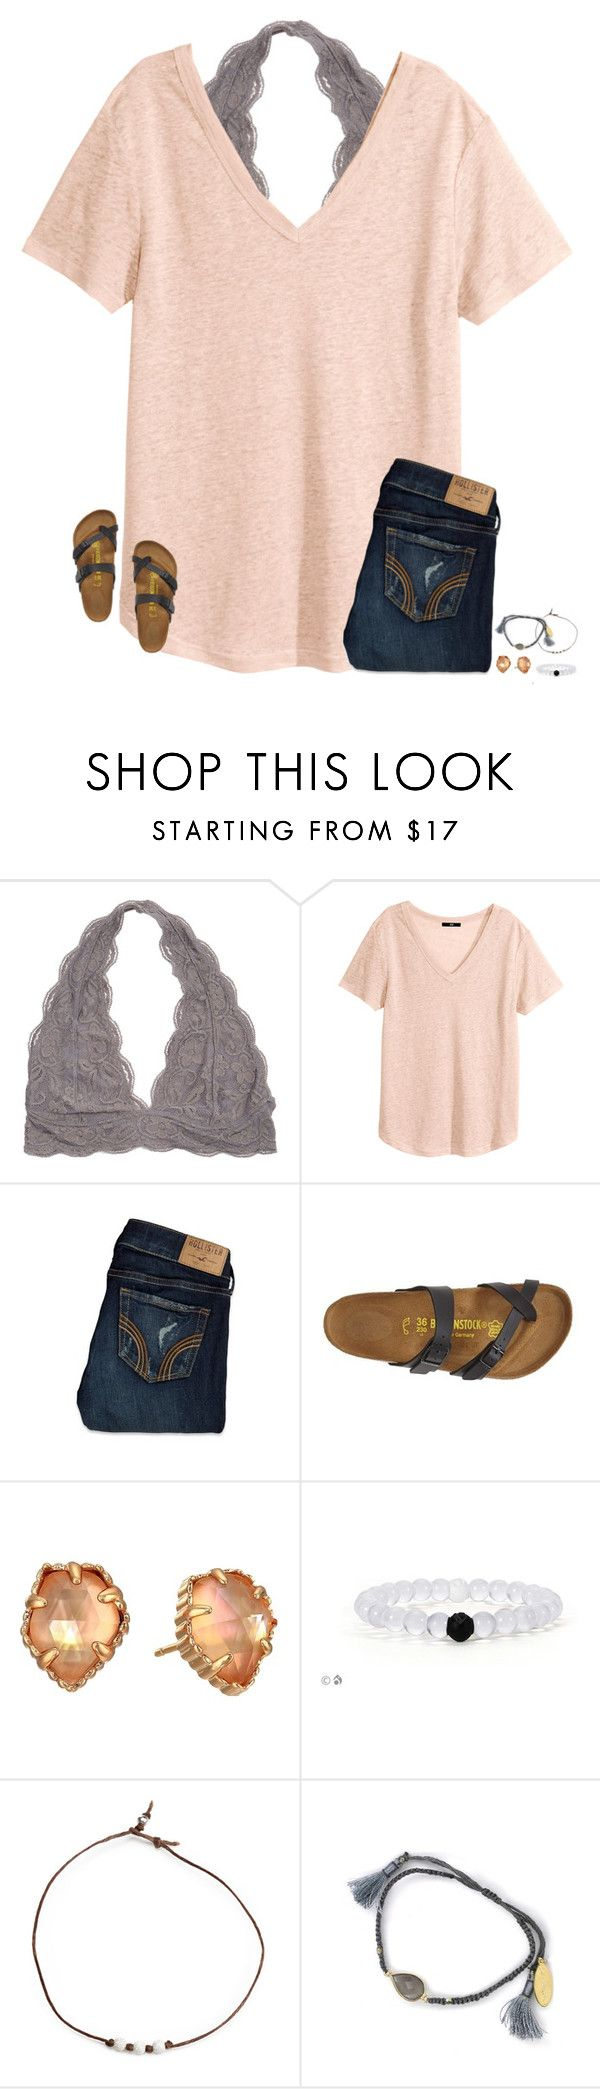 """❤️"" by secfashion13 ❤ liked on Polyvore featuring H&M, Hollister Co., Birkenstock, Kendra Scott and Feather & Stone"